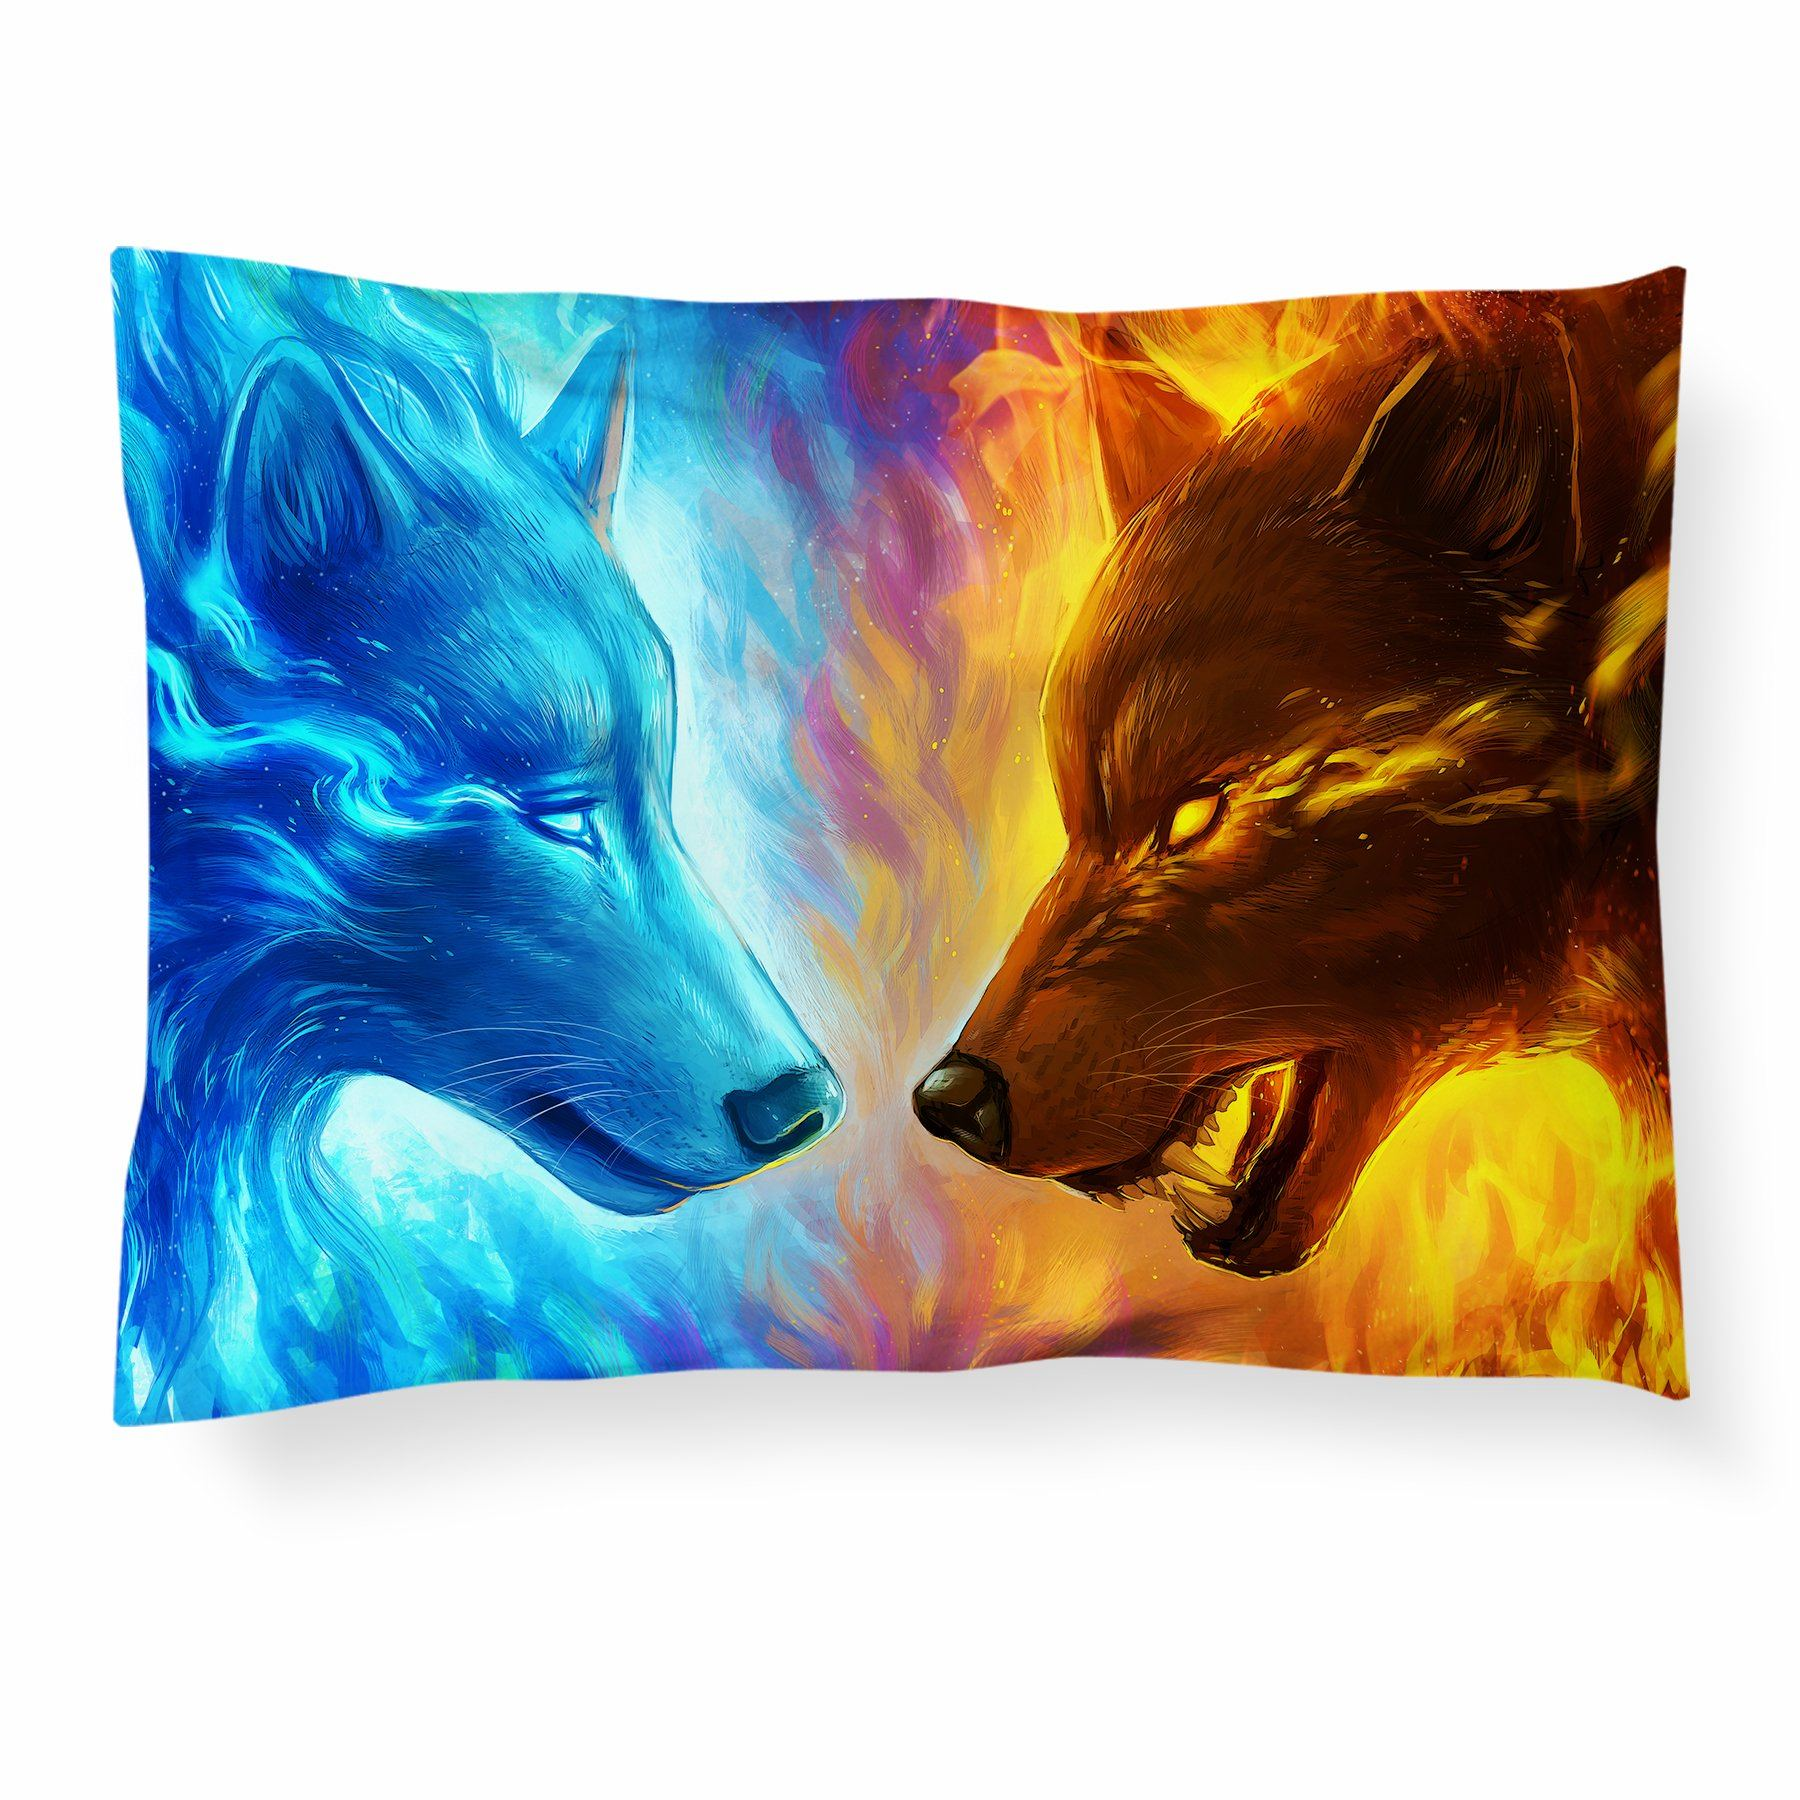 Fire and Ice Pillowcase Pillowcase Electro Threads